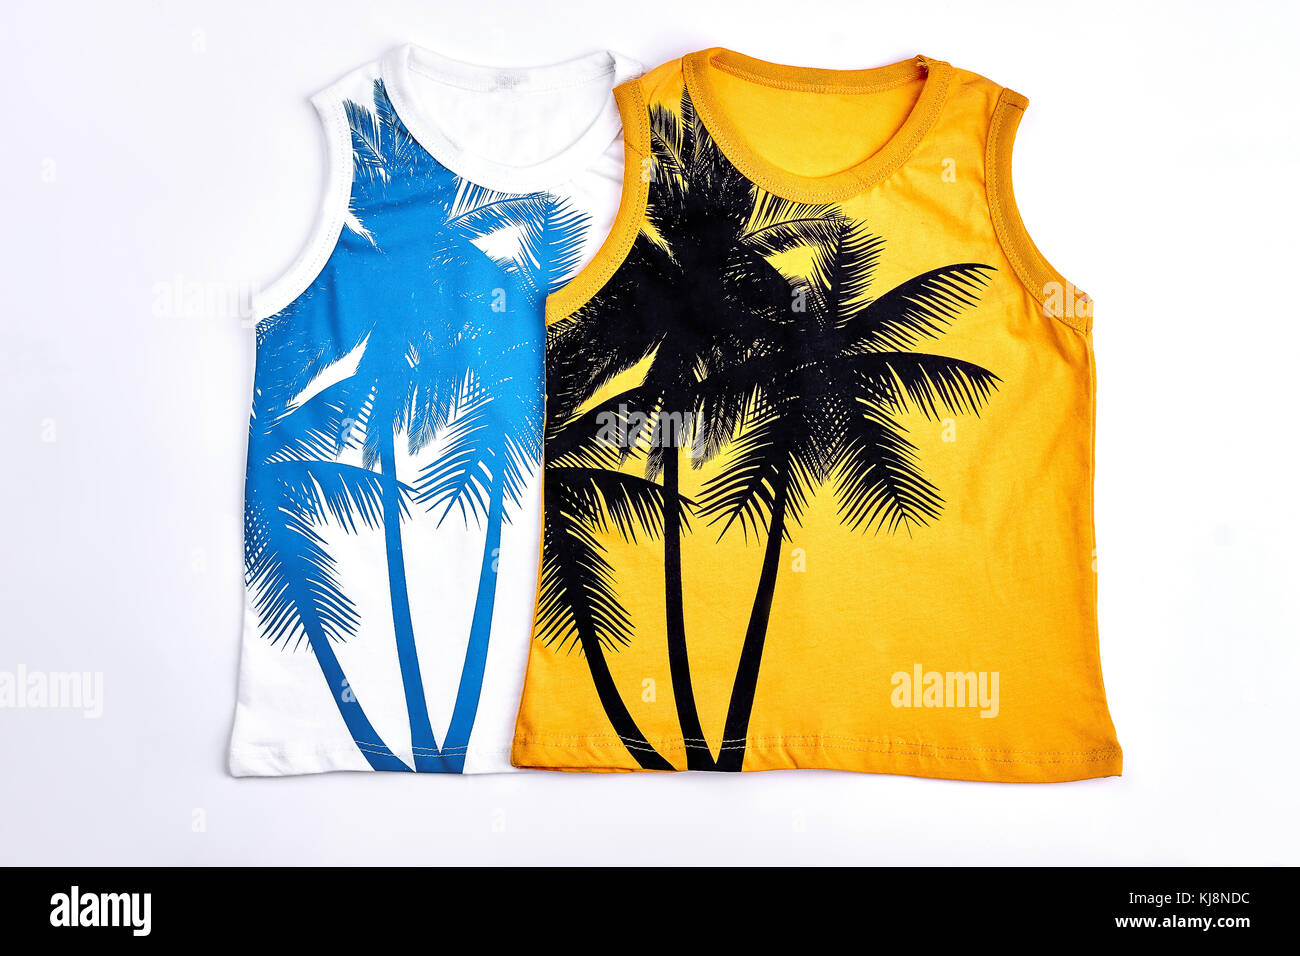 8a213f48e4a Kids fashion design sleeveless t-shirts. Collection of childrens cotton  printed t-shirts